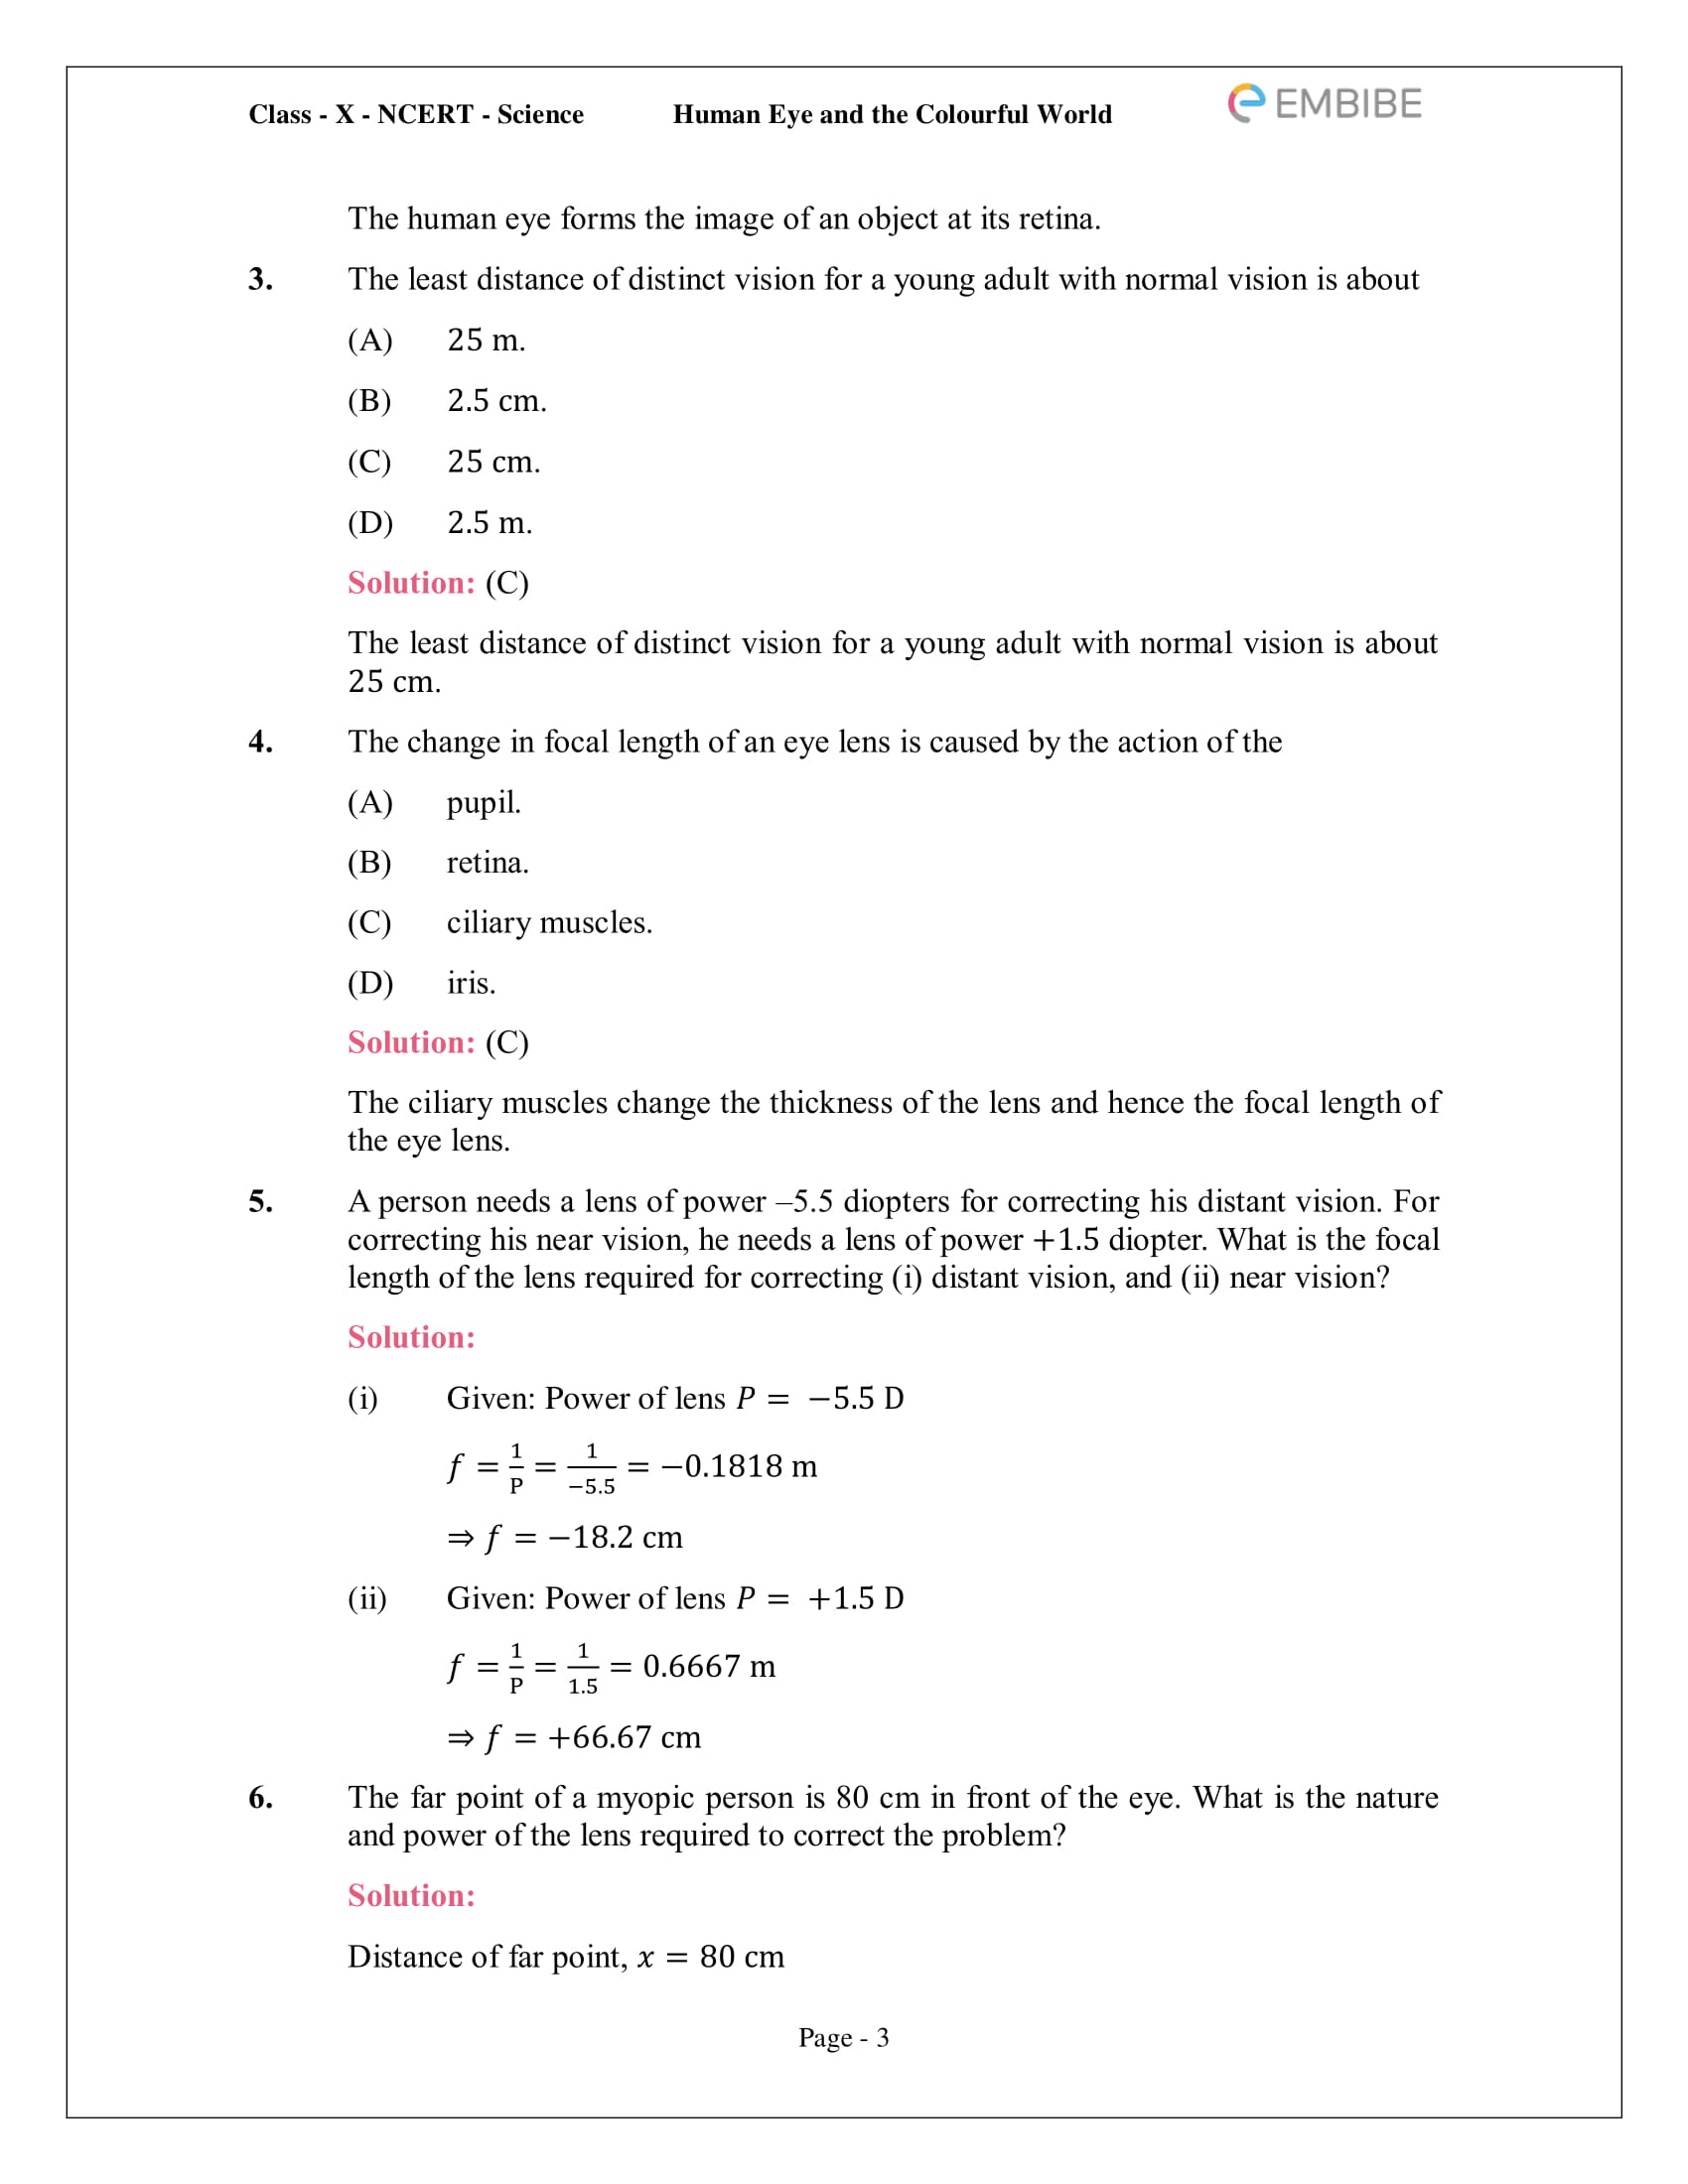 CBSE NCERT Solutions for Class 10 Science Chapter 11 - Human Eye And Colourful World - 3